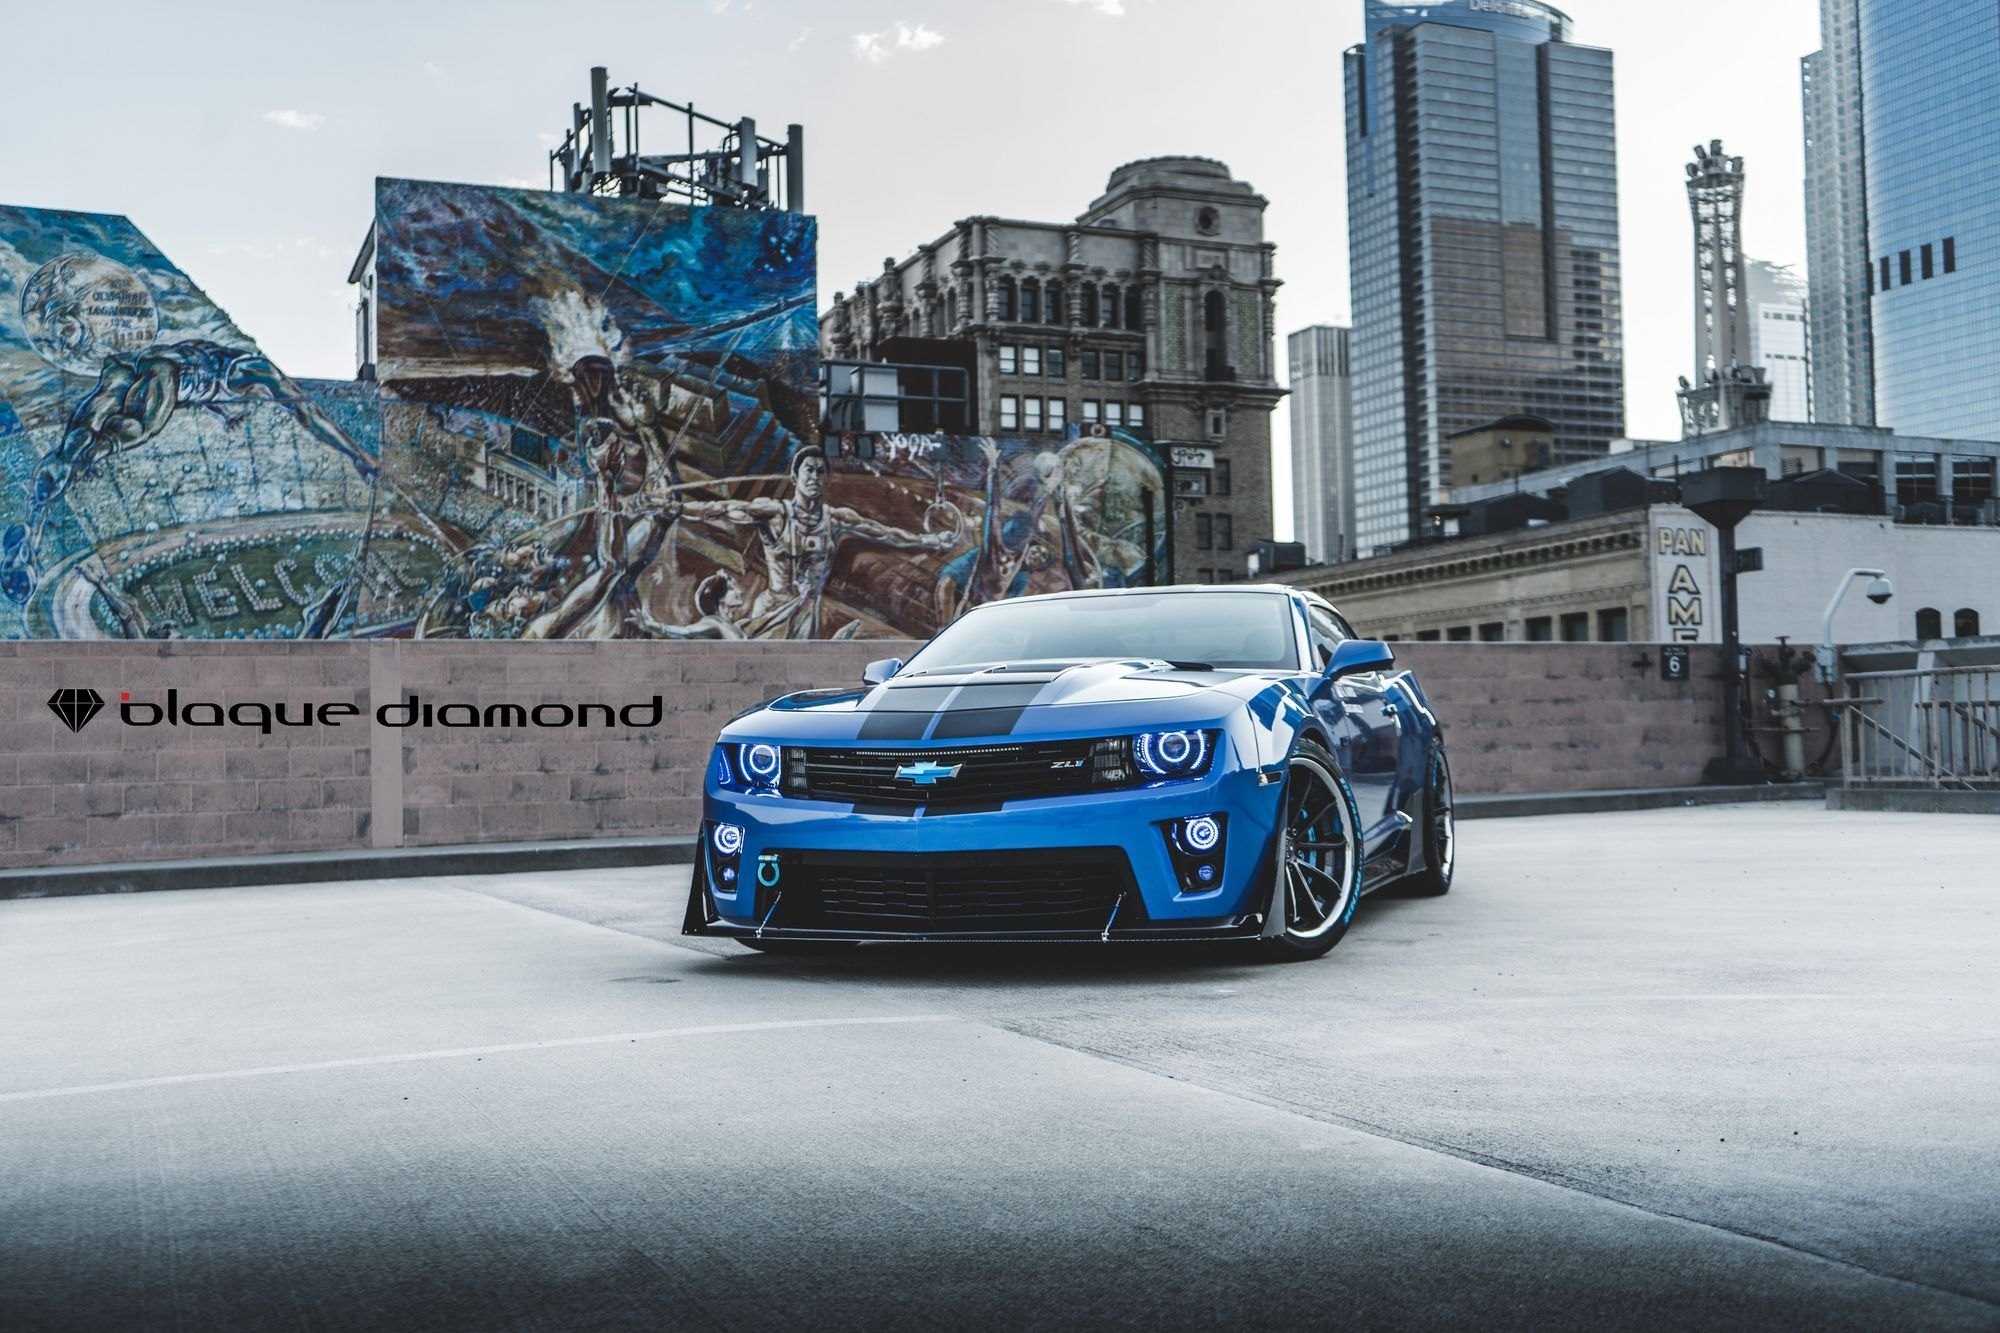 Aftermarket Front Lip on Blue Chevy Camaro - Photo by Blaque Diamond